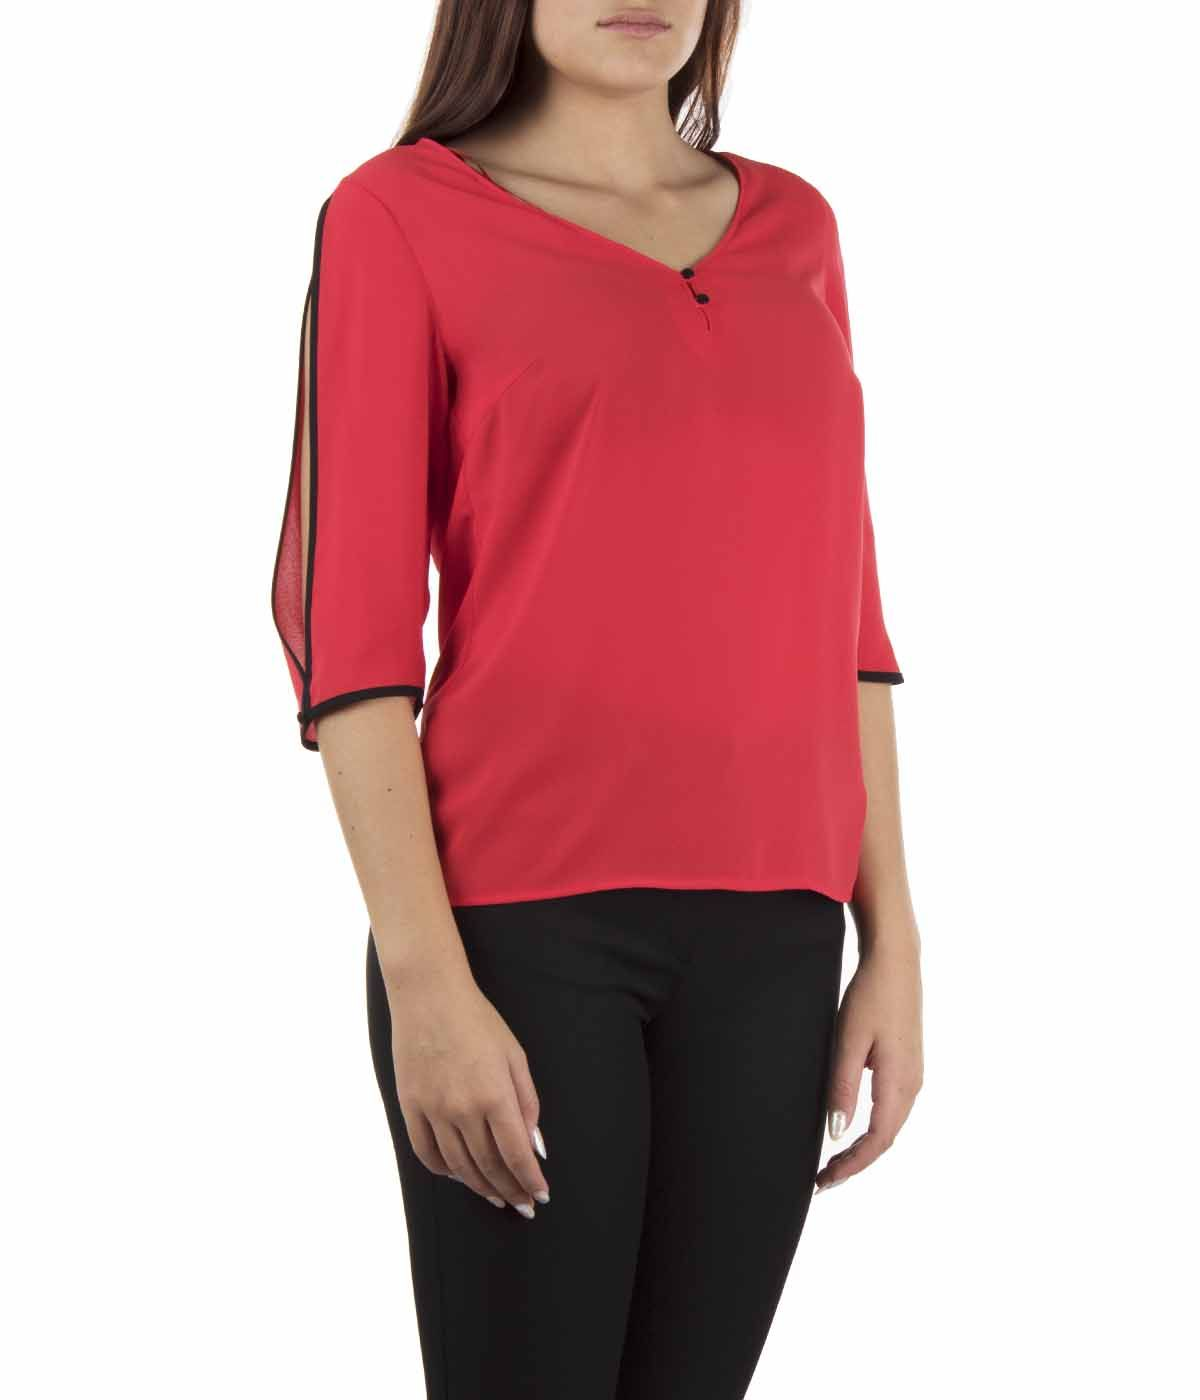 V-neck blouse with 3/4 sleeves  2